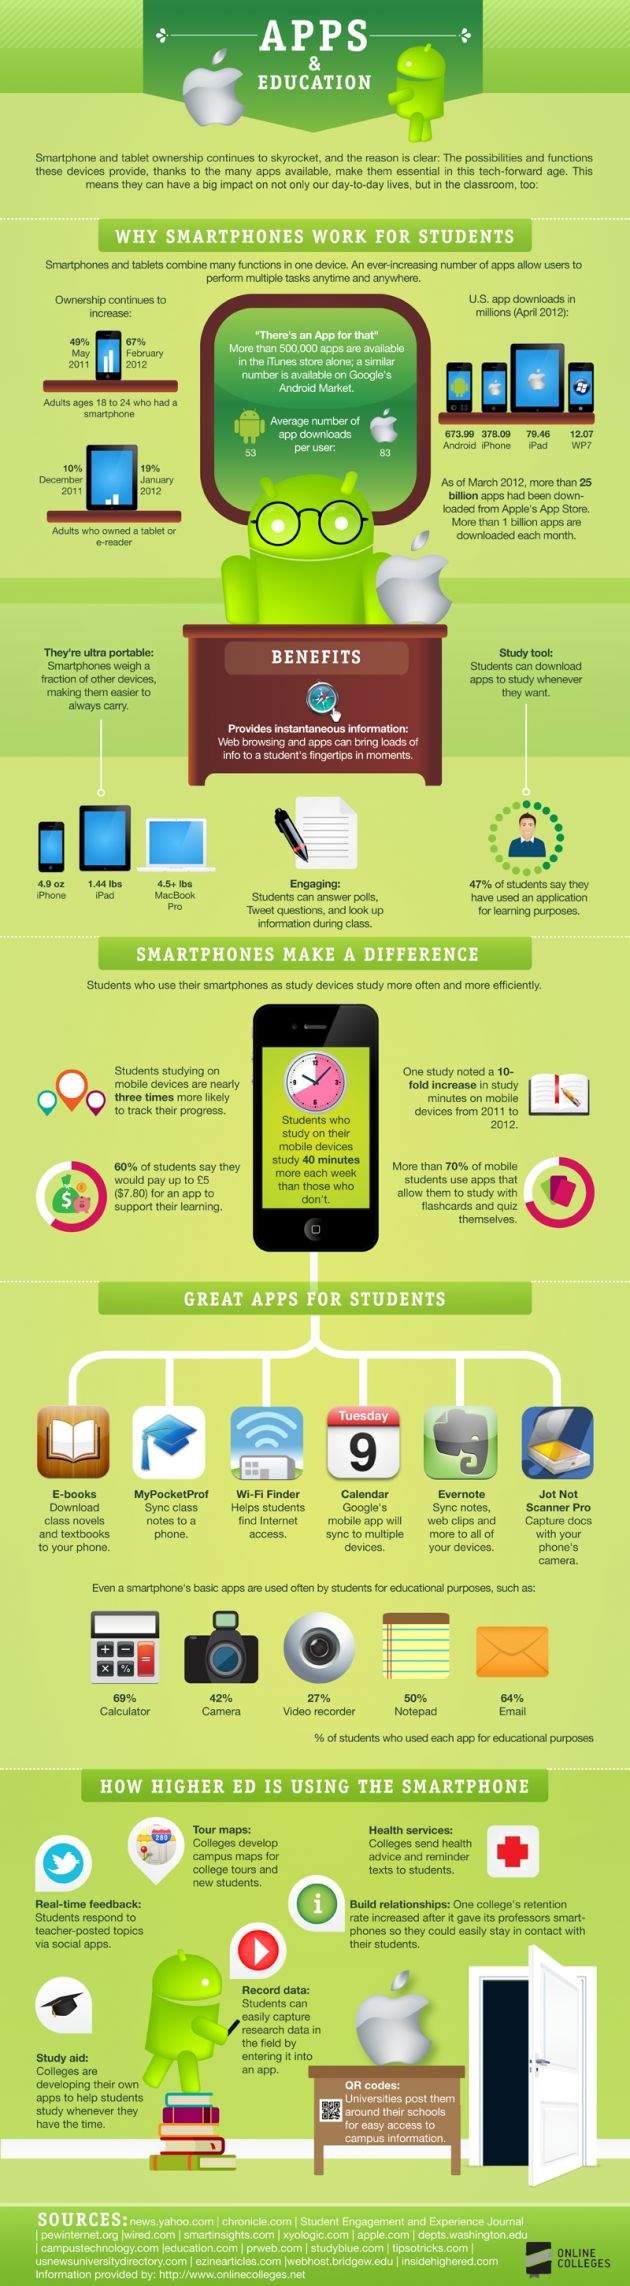 EDUCATION - Apps-Education-800